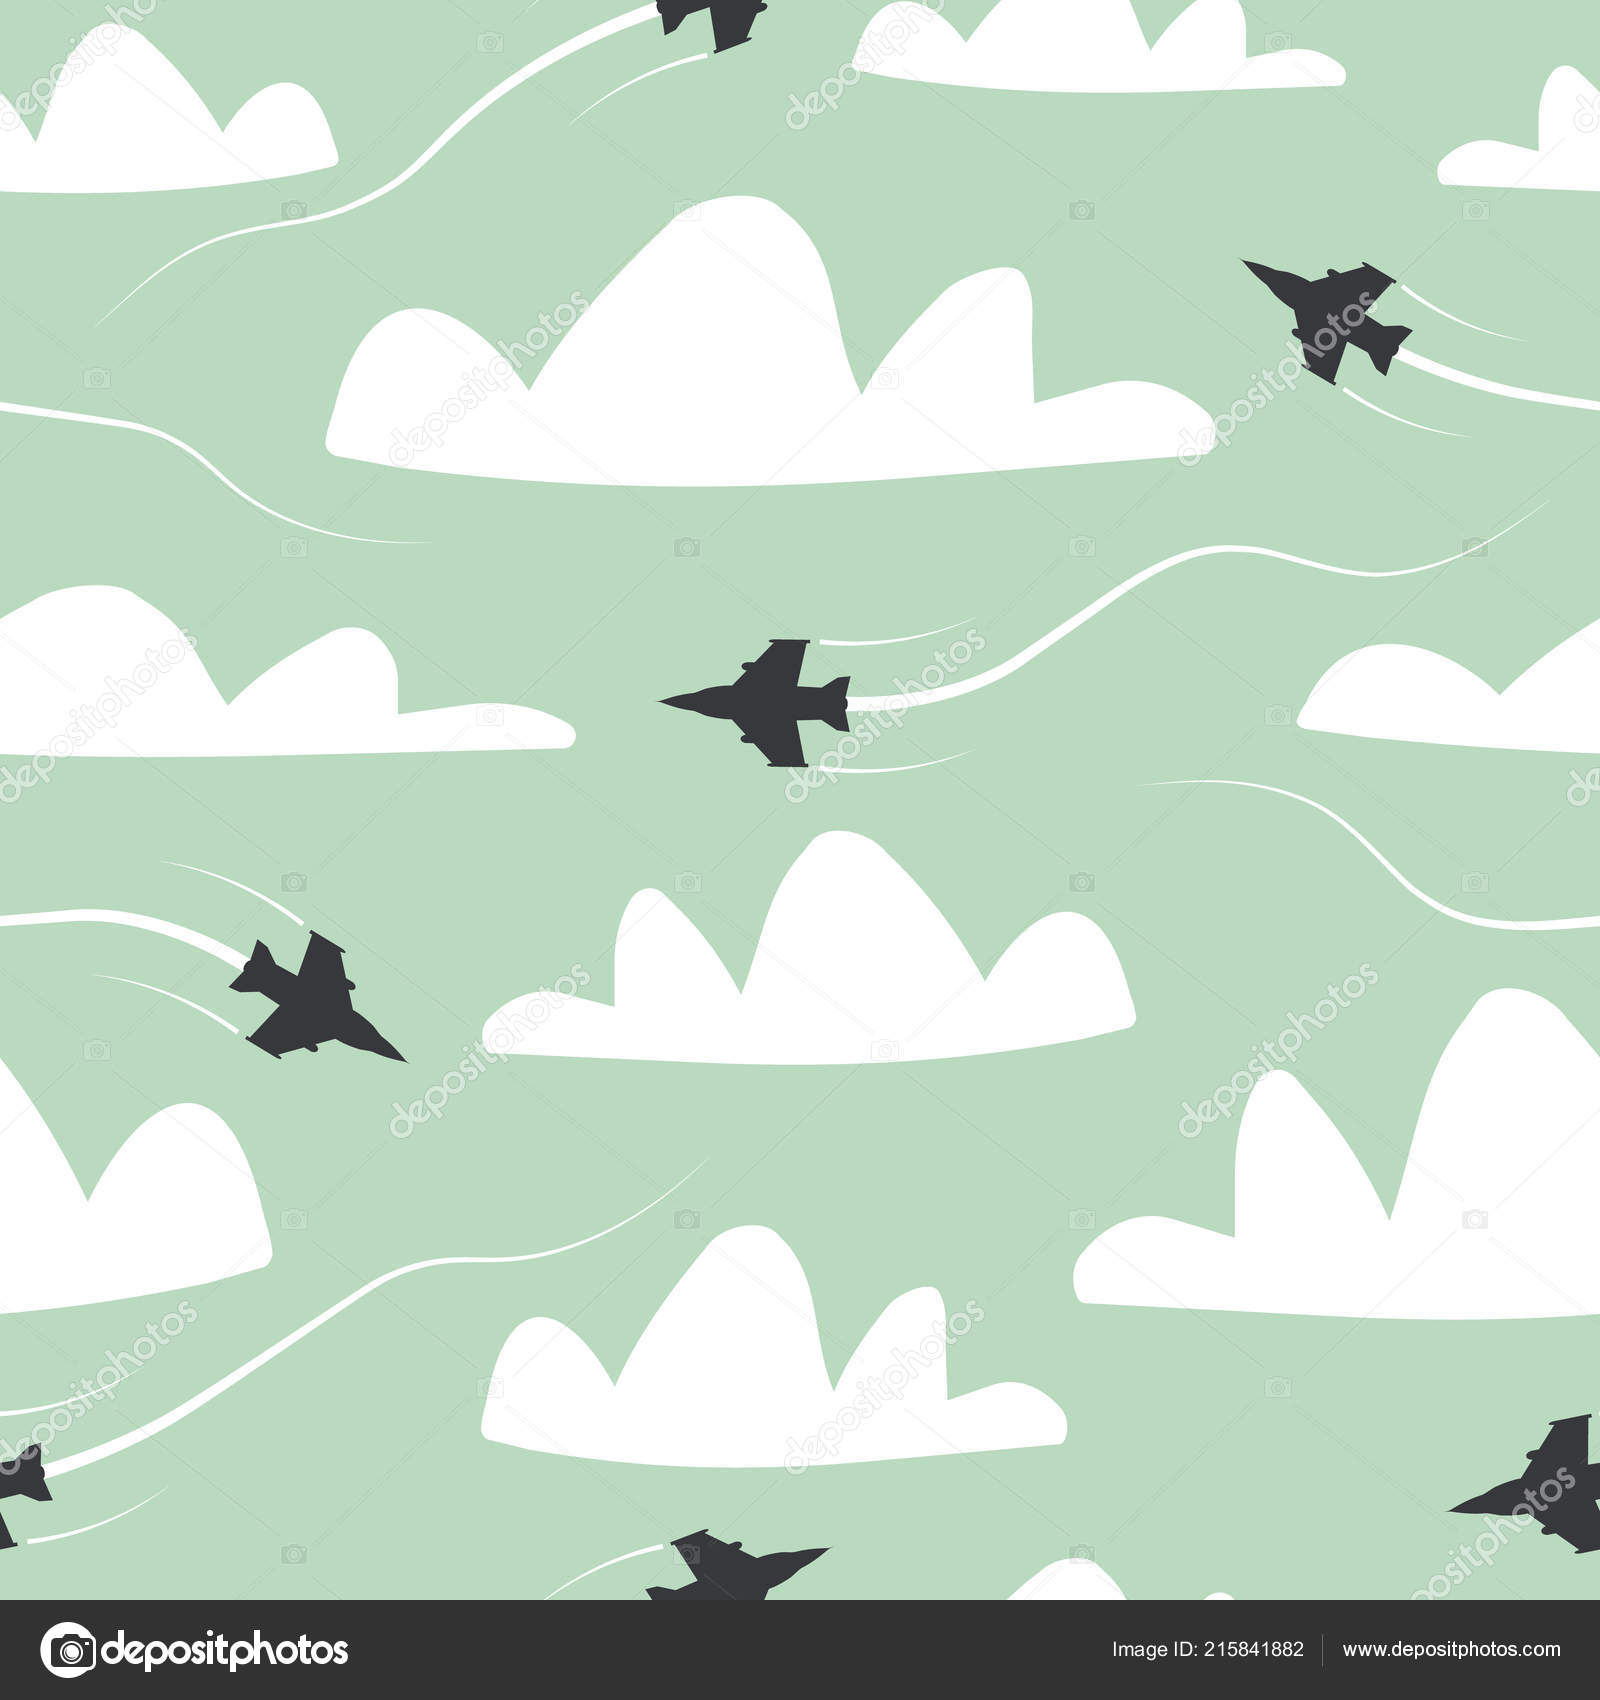 Seamless Pattern Planes In The AirWeb Site Page And Mobile App Design ElementAir Traffic SilhouetteAir TravelAirplane RoutesVector Illustration